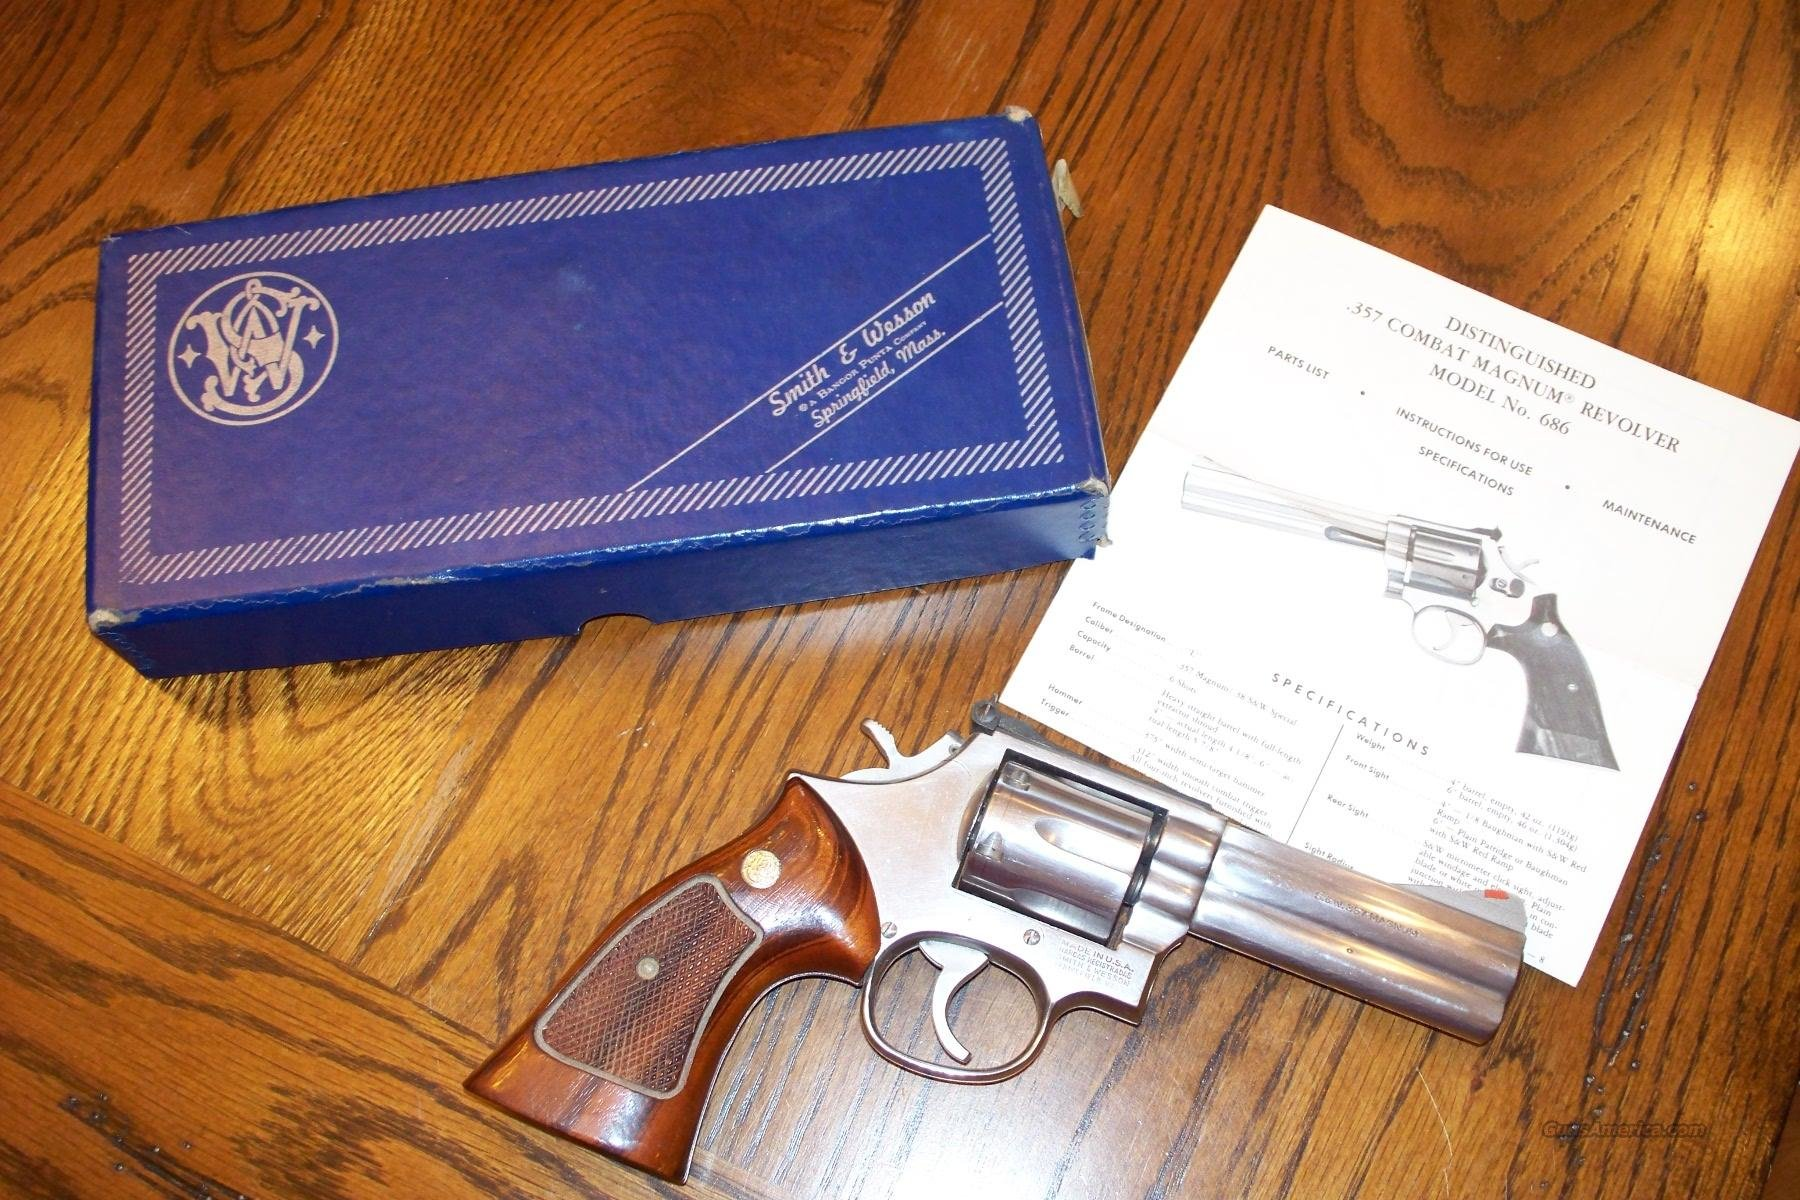 Smith and Wesson .357 Model 686 Stainless  Guns > Pistols > Smith & Wesson Revolvers > Full Frame Revolver